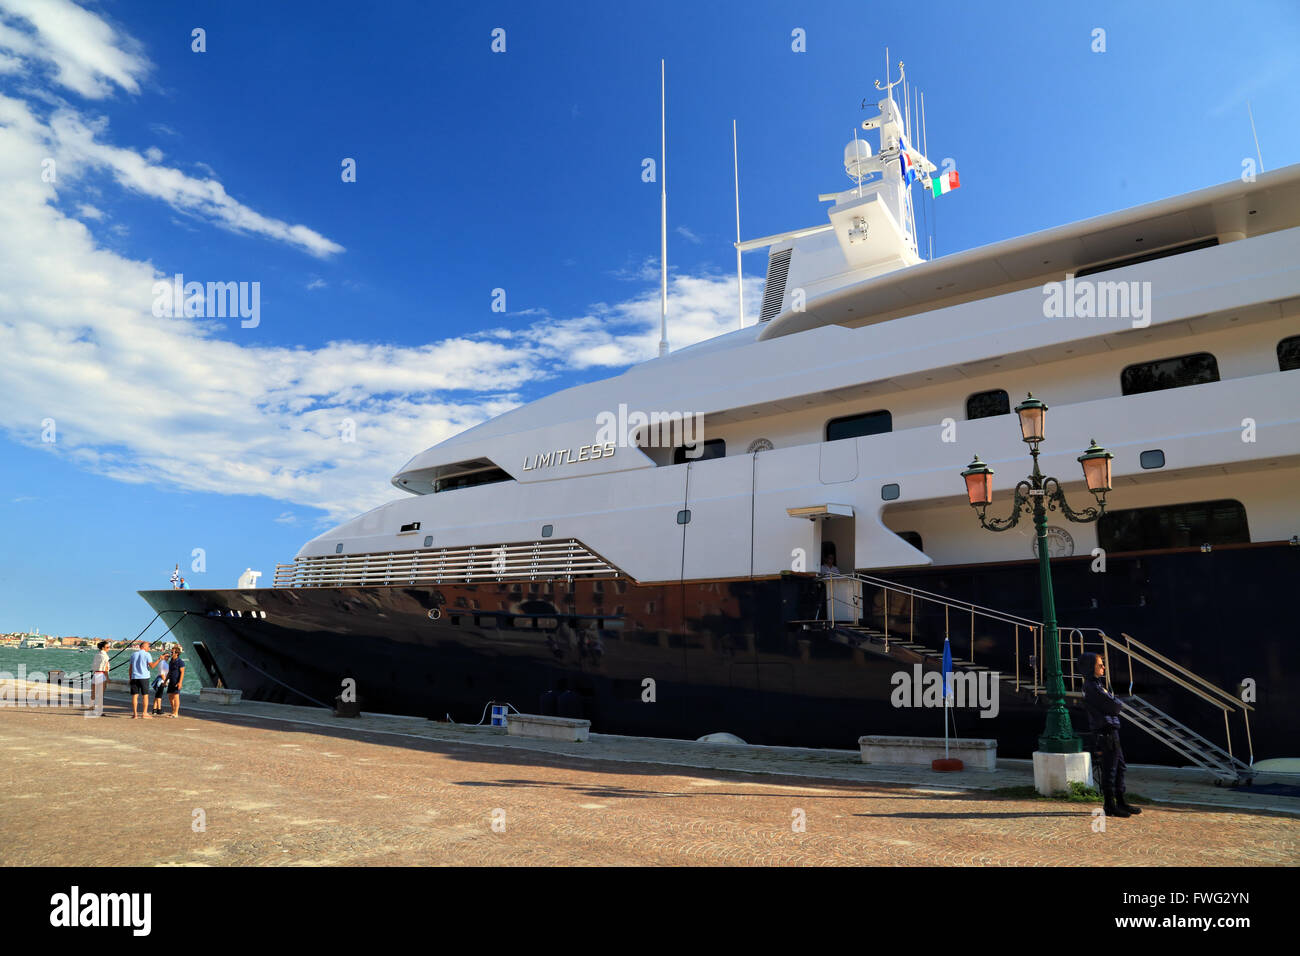 Luxury super mega yacht Limitless, IMO 8975940, owned by Les Wexner - Stock Image